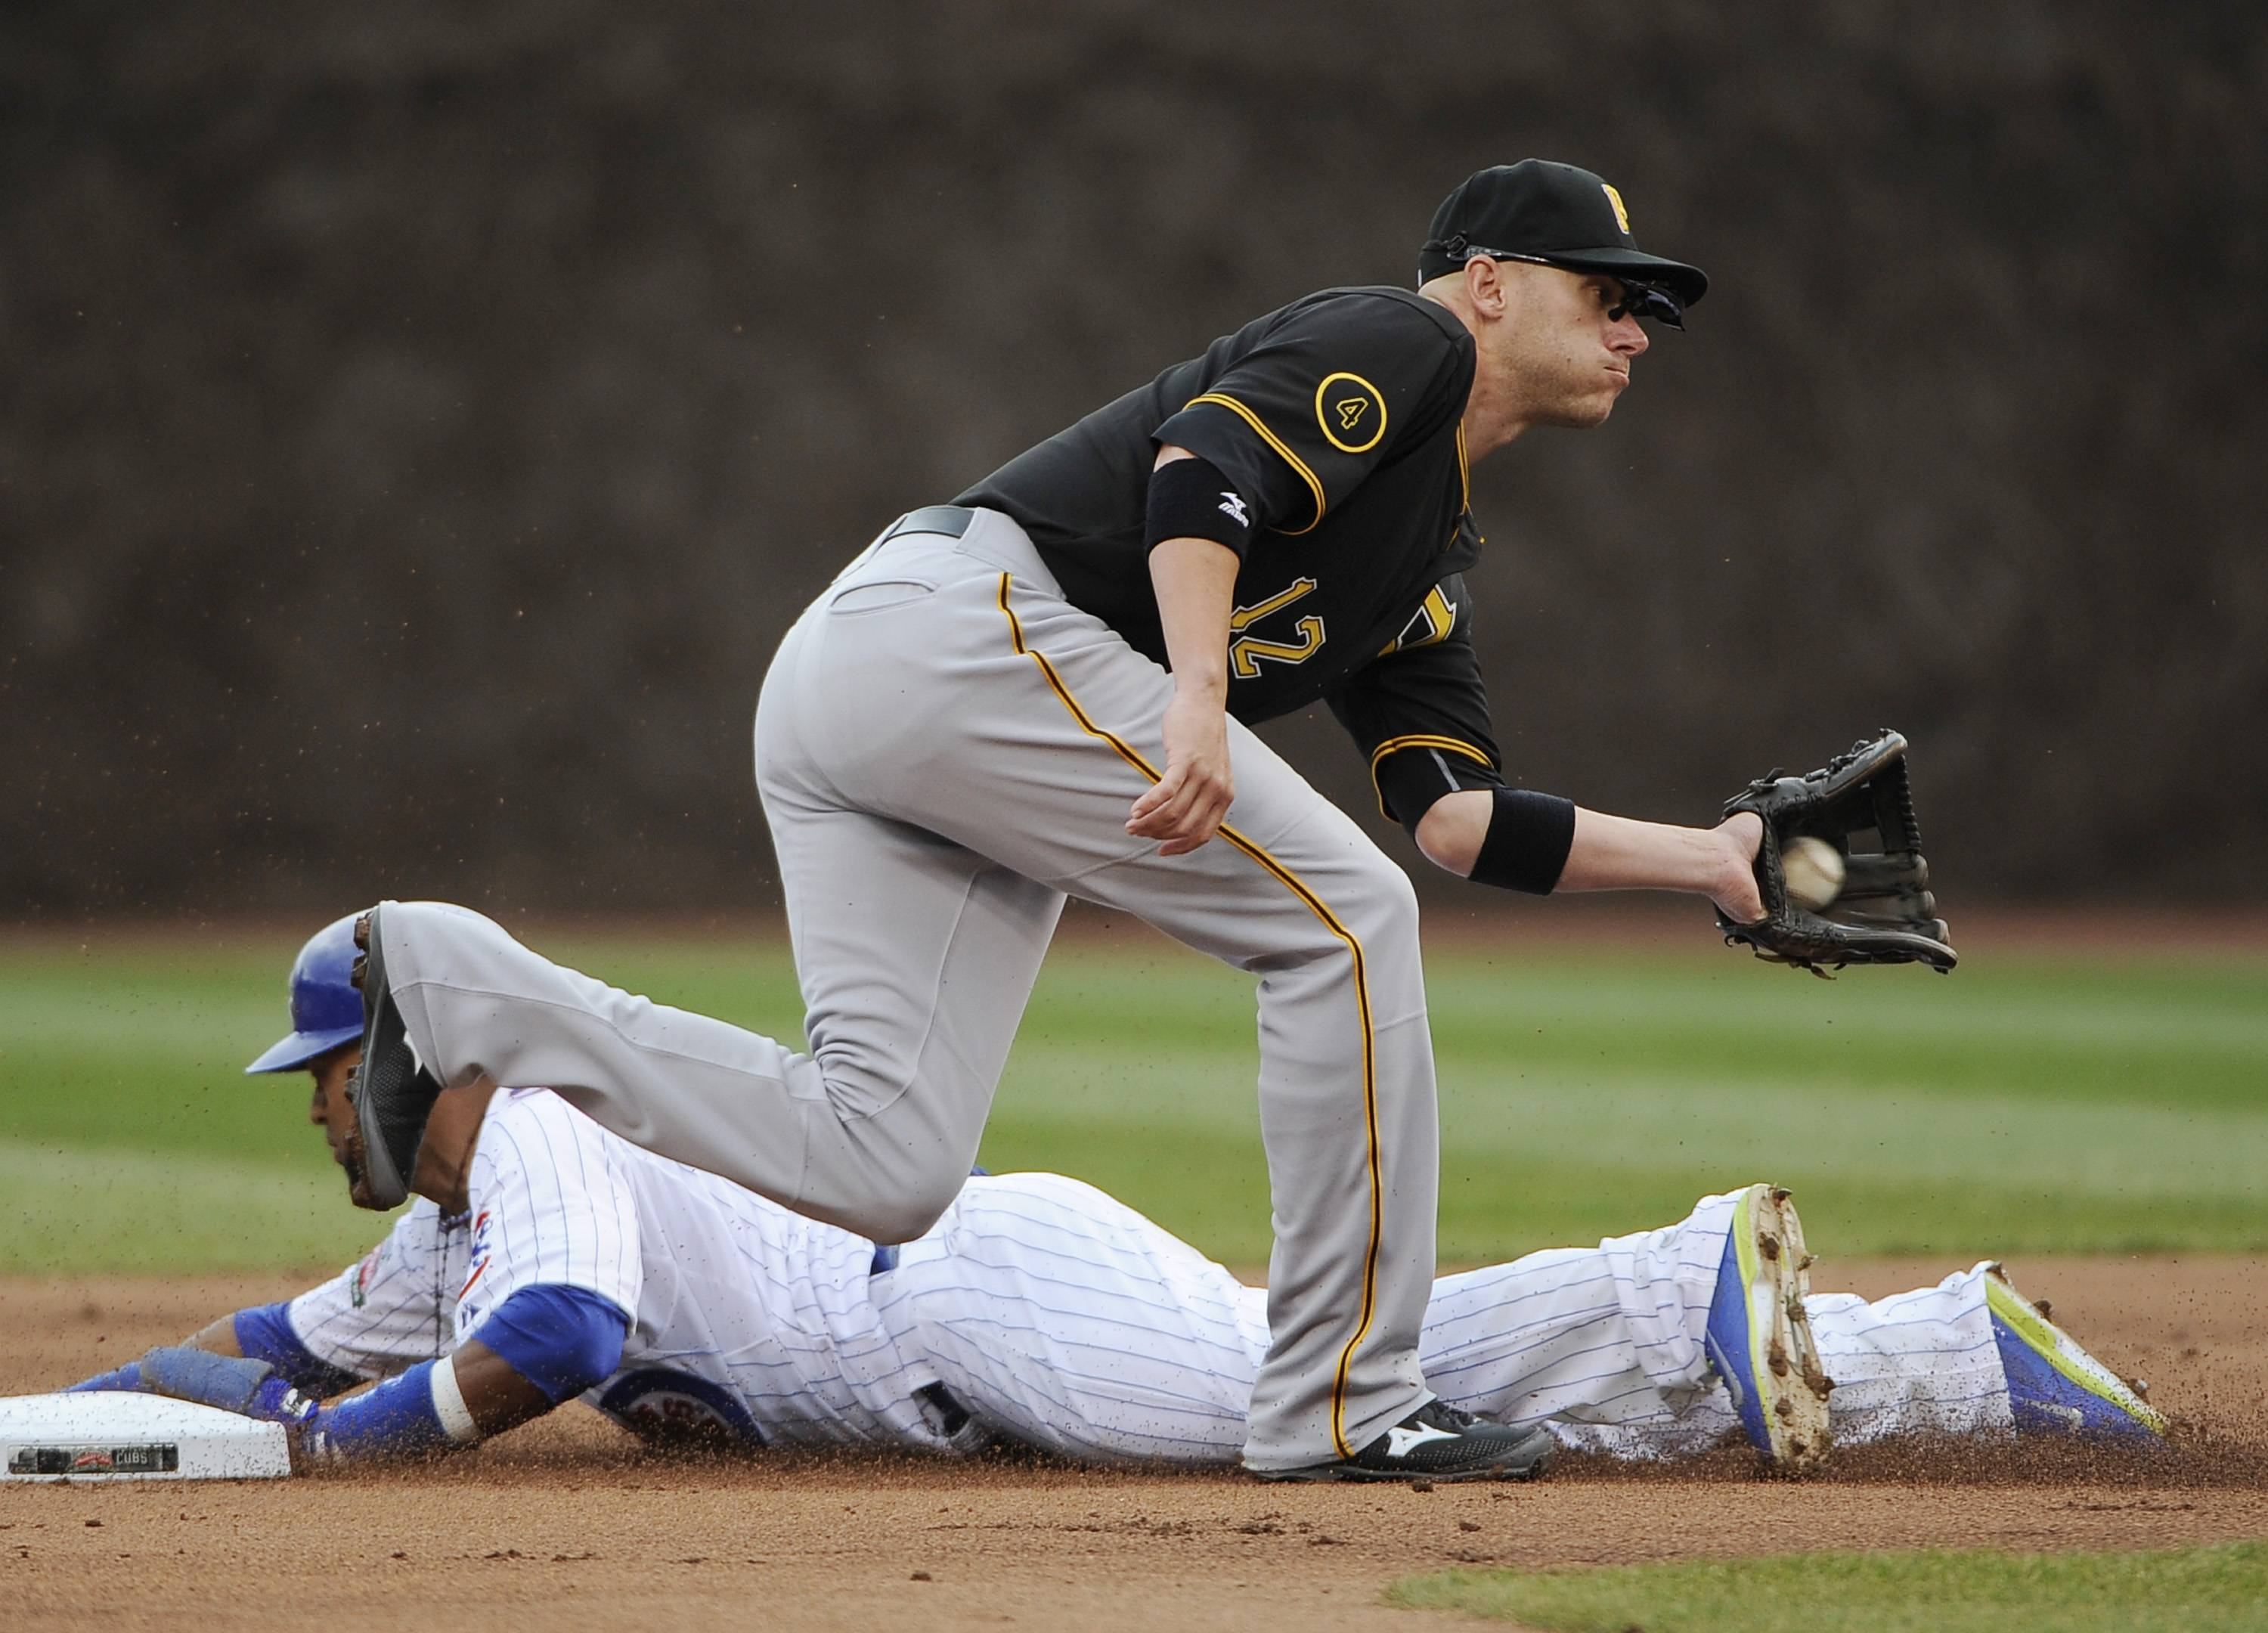 Emilio Bonifacio steals second base as Pittsburgh Pirates shortstop Clint Barmes (12) takes the throw during the first inning of a baseball game, Thursday, April 10, 2014 in Chicago.